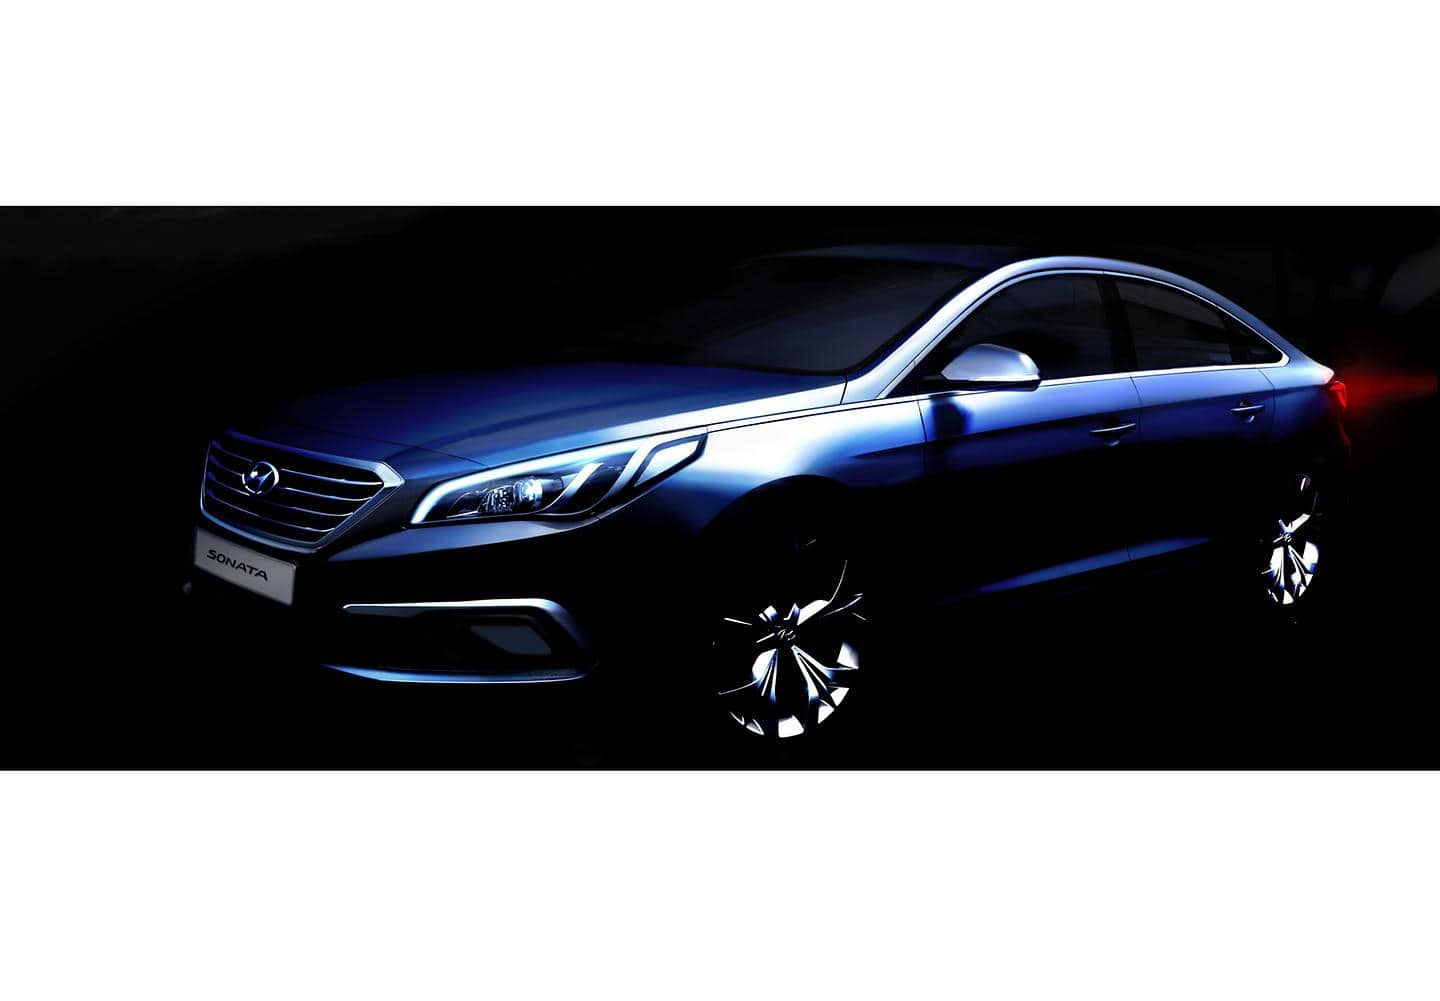 Hyundai Motor Previews Soon-To-Be Launched All-New Sonata